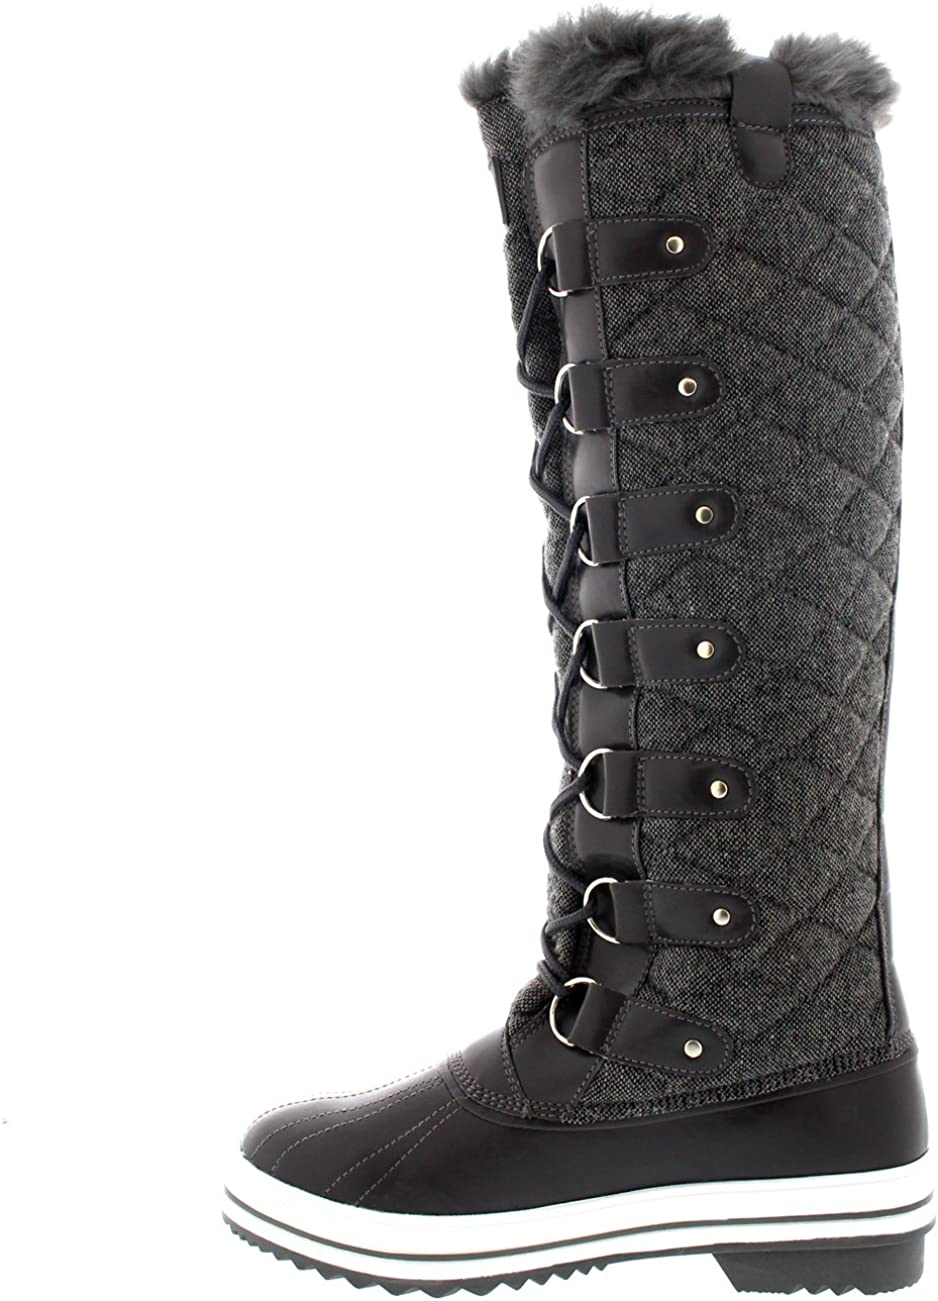 Polar Womens Quilted Knee High Duck